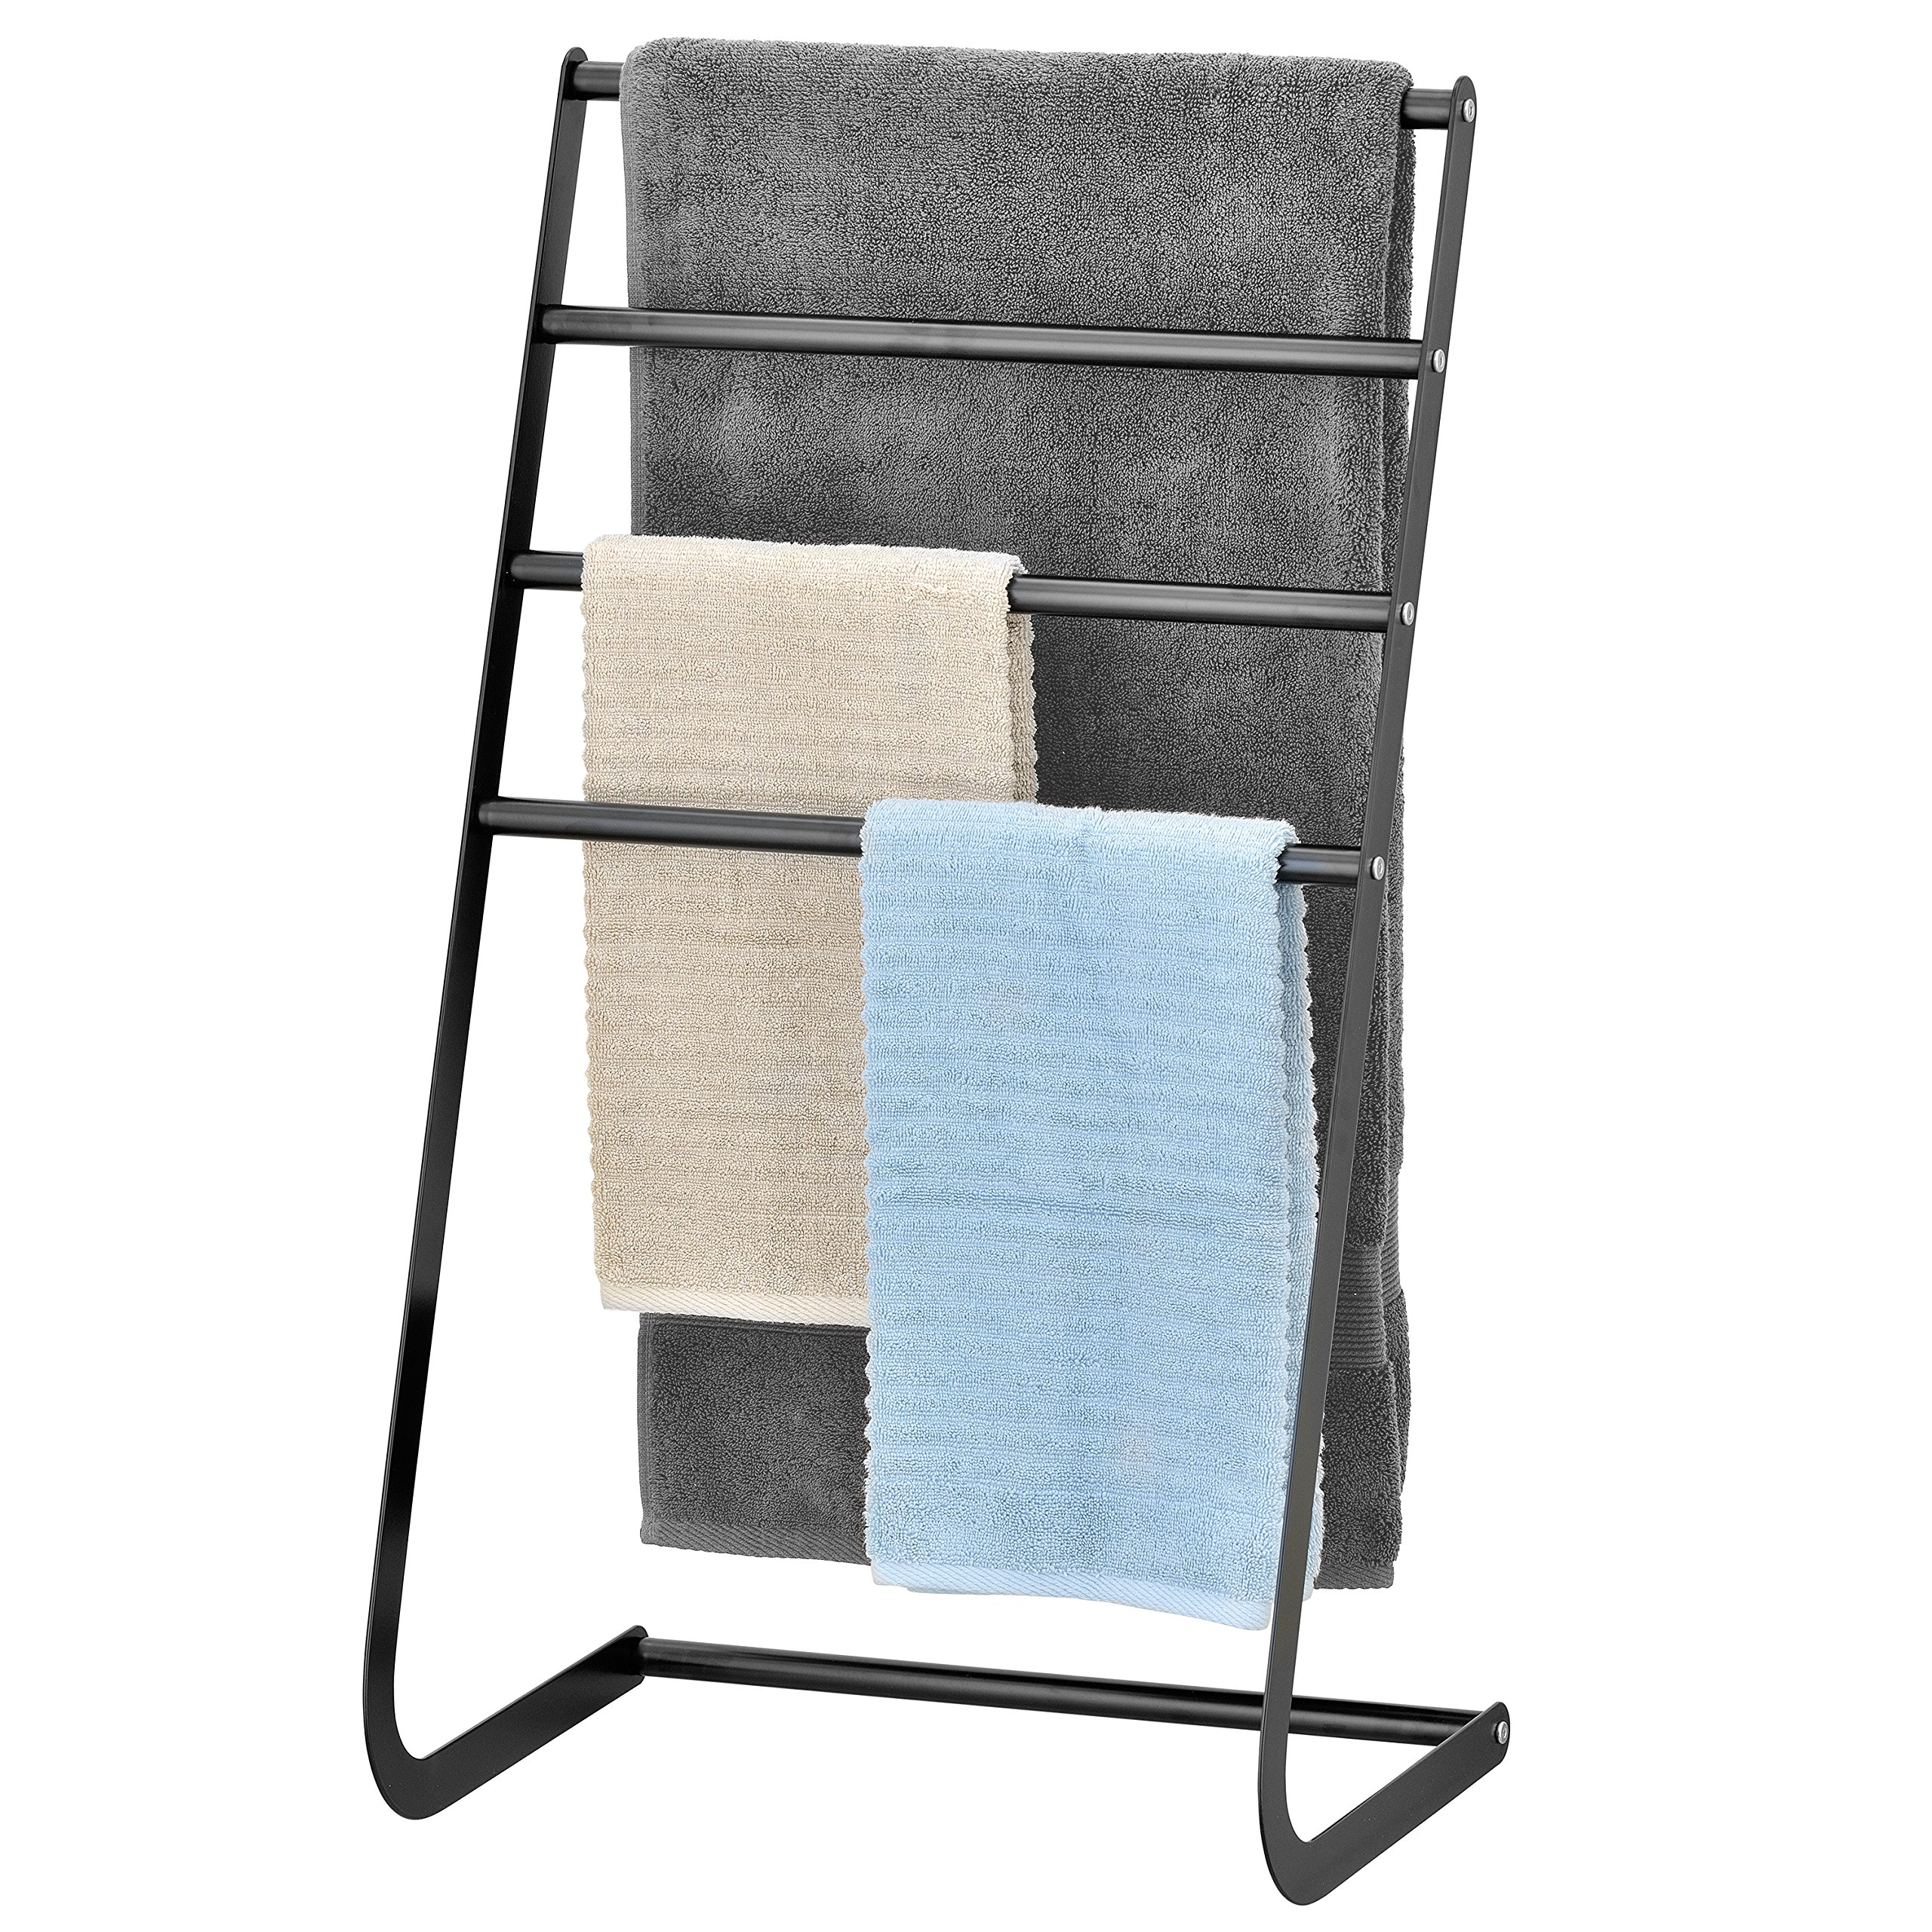 MyGift 32 Inch Freestanding Metal Towel Rack, 4 Tier Laundry Drying Stand, Black by MyGift